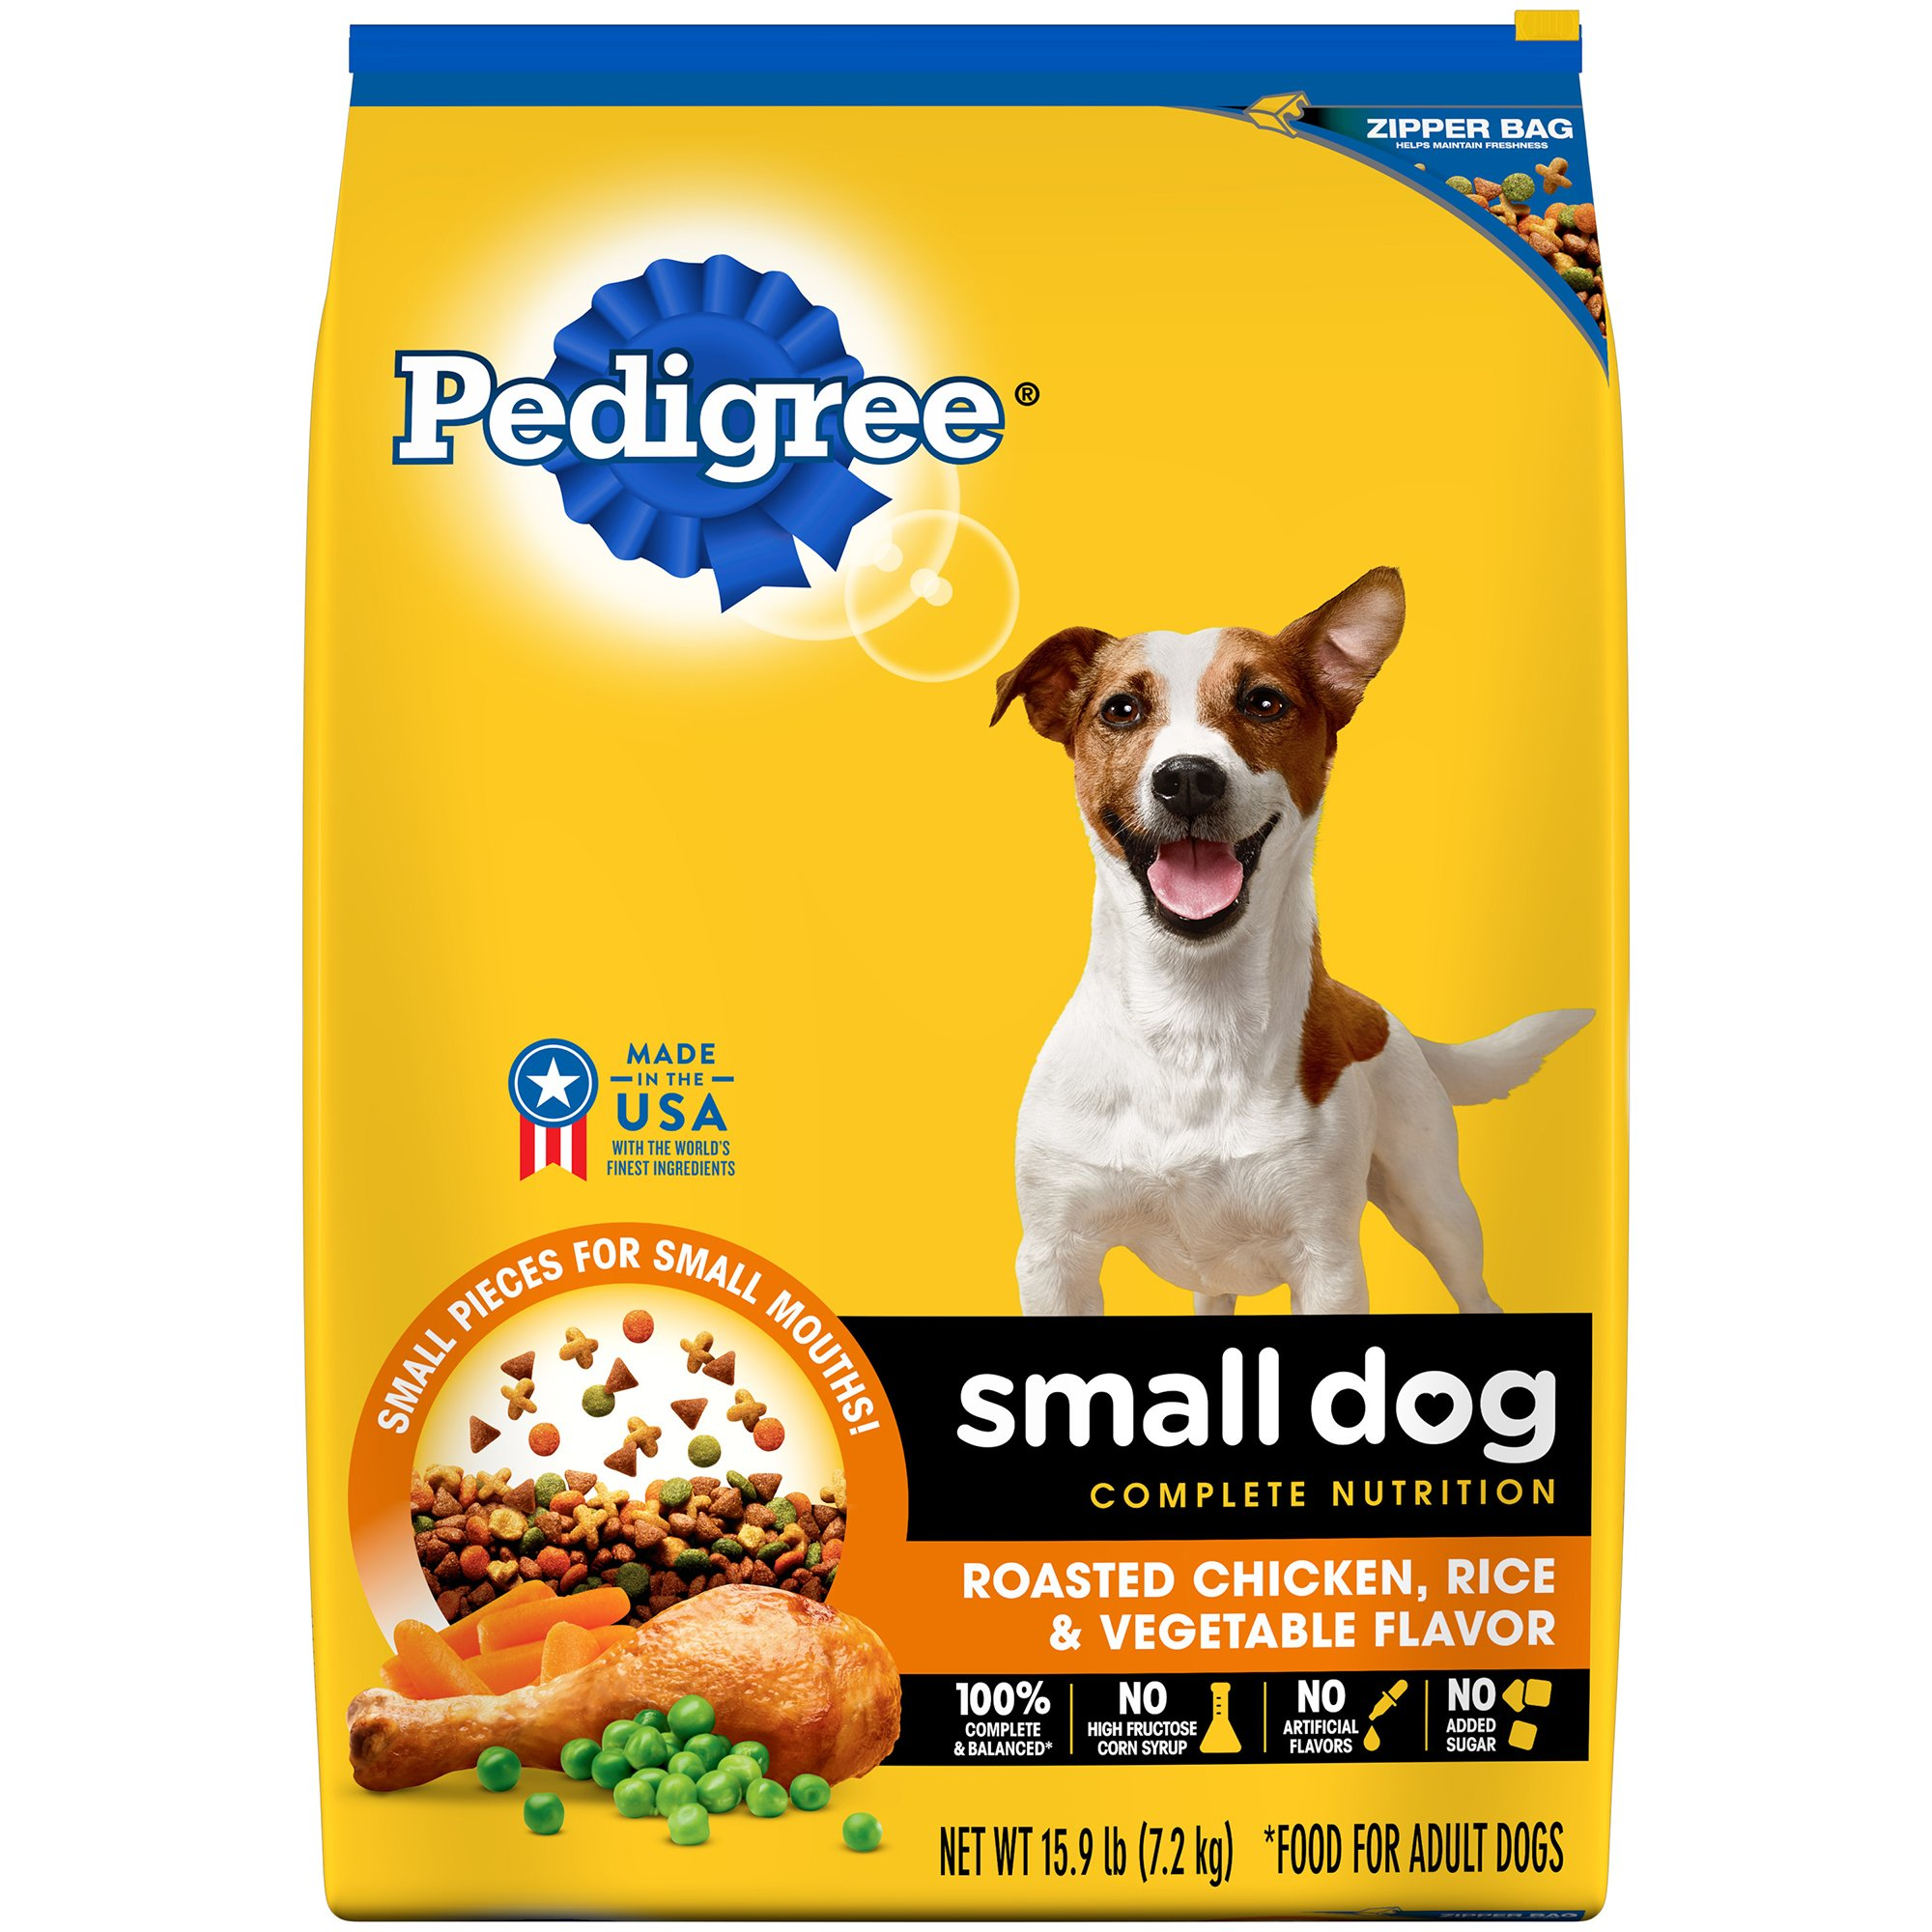 Pedigree Small Dog Complete Nutrition Adult Dry Dog Food Roasted Chicken, Rice & Vegetable Flavor, 15.9 Lb. Bag by Pedigree